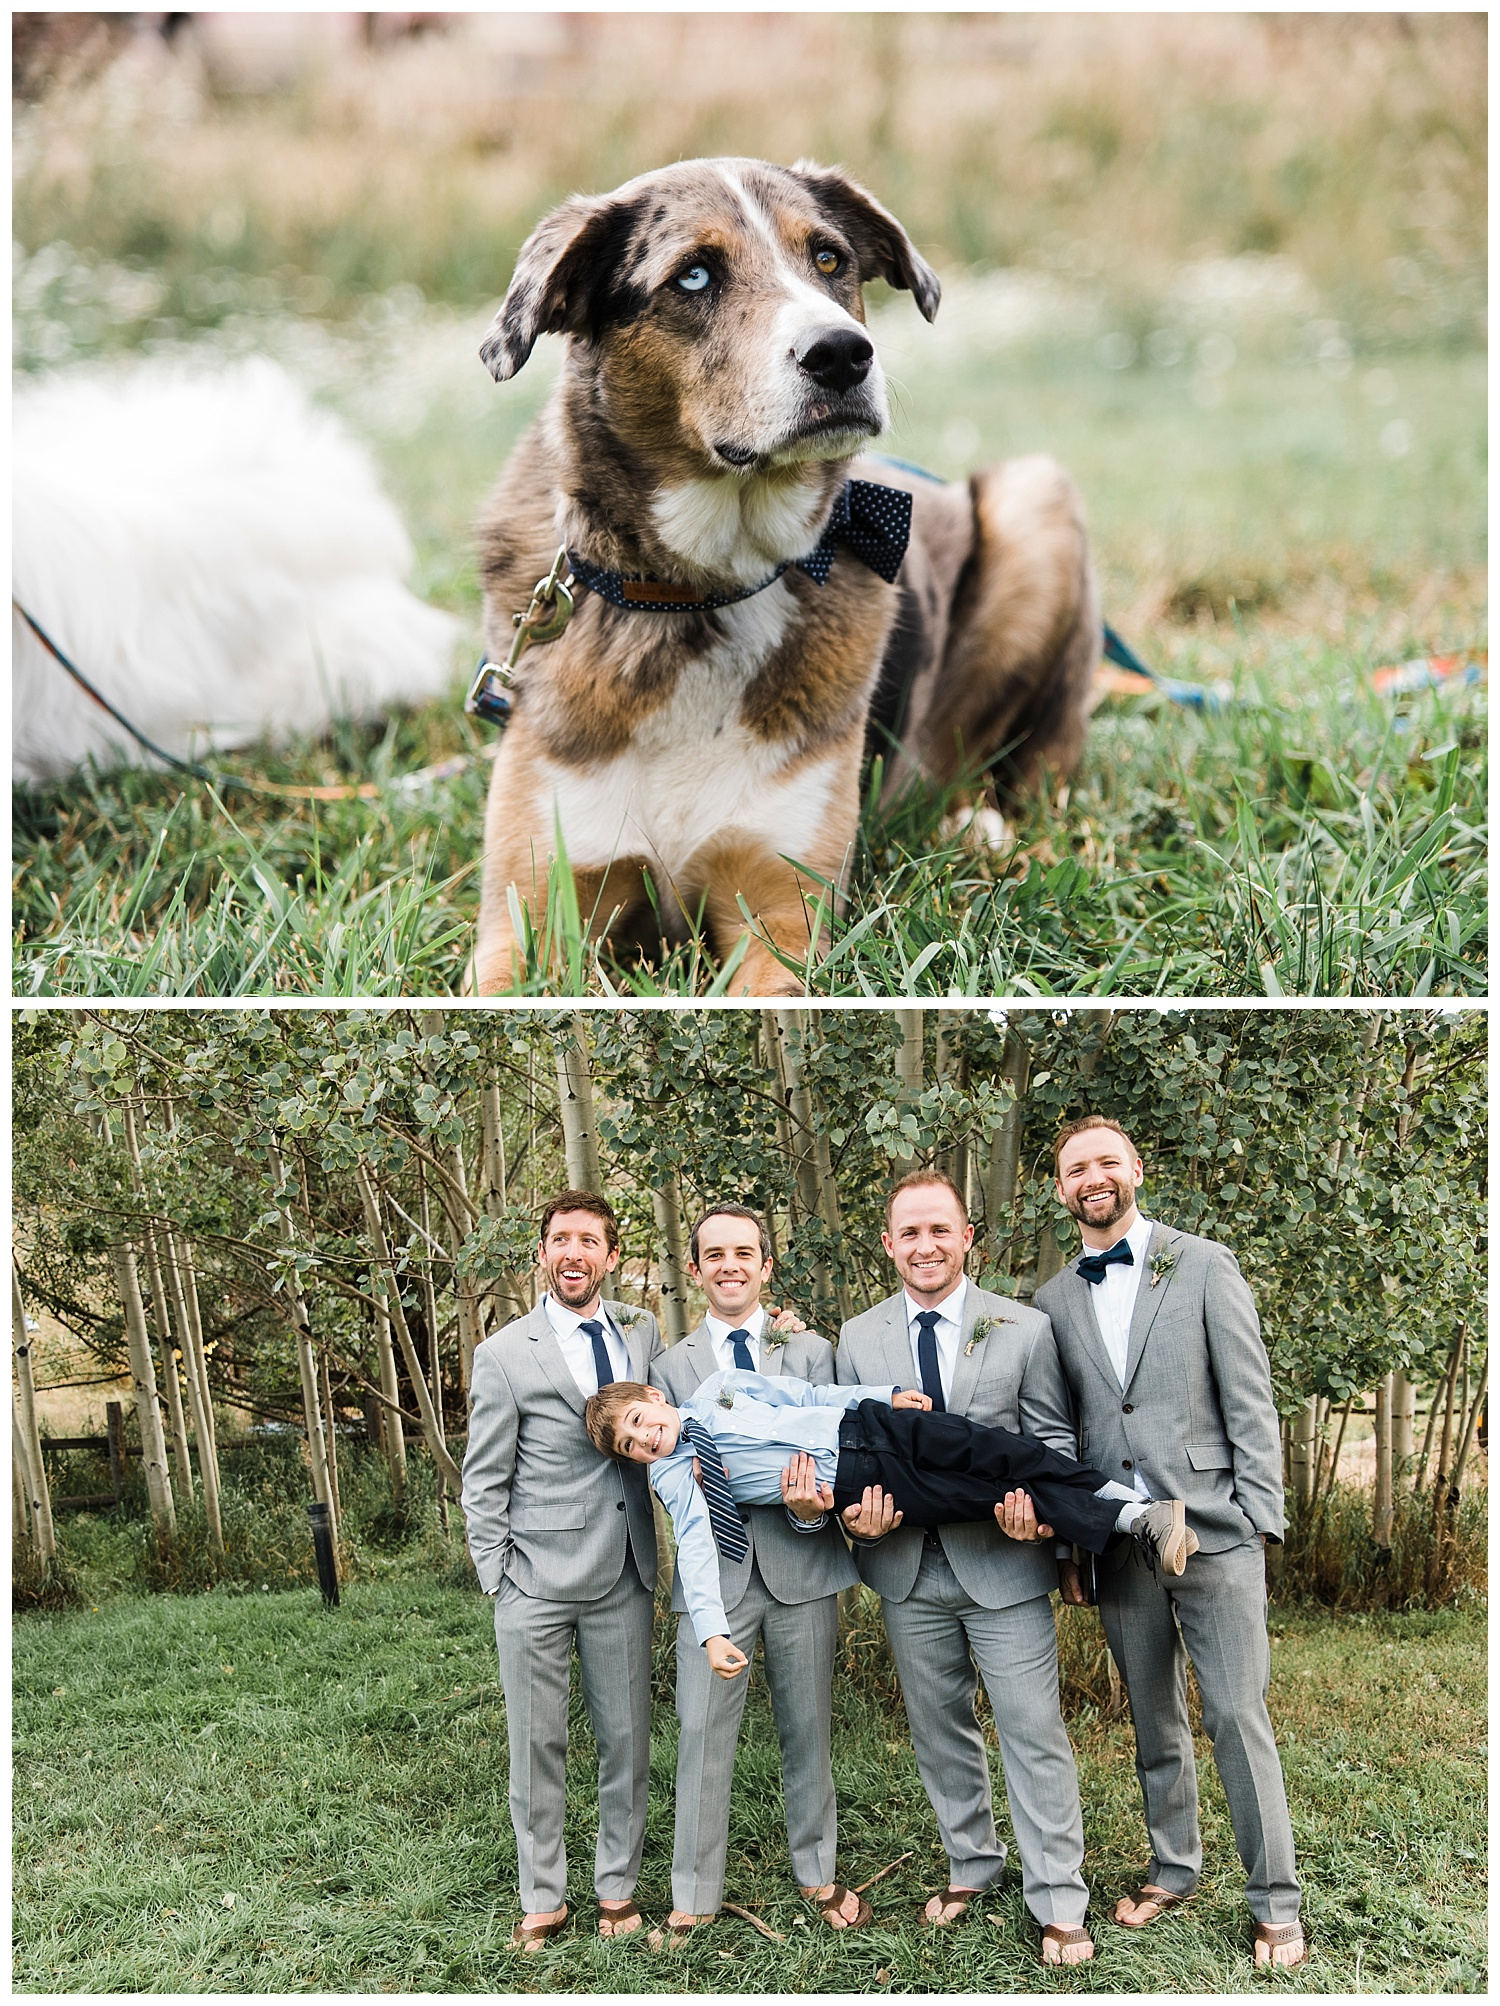 Gold_Hill_Inn_Wedding_Boulder_CO_Apollo_Fields_438.jpg